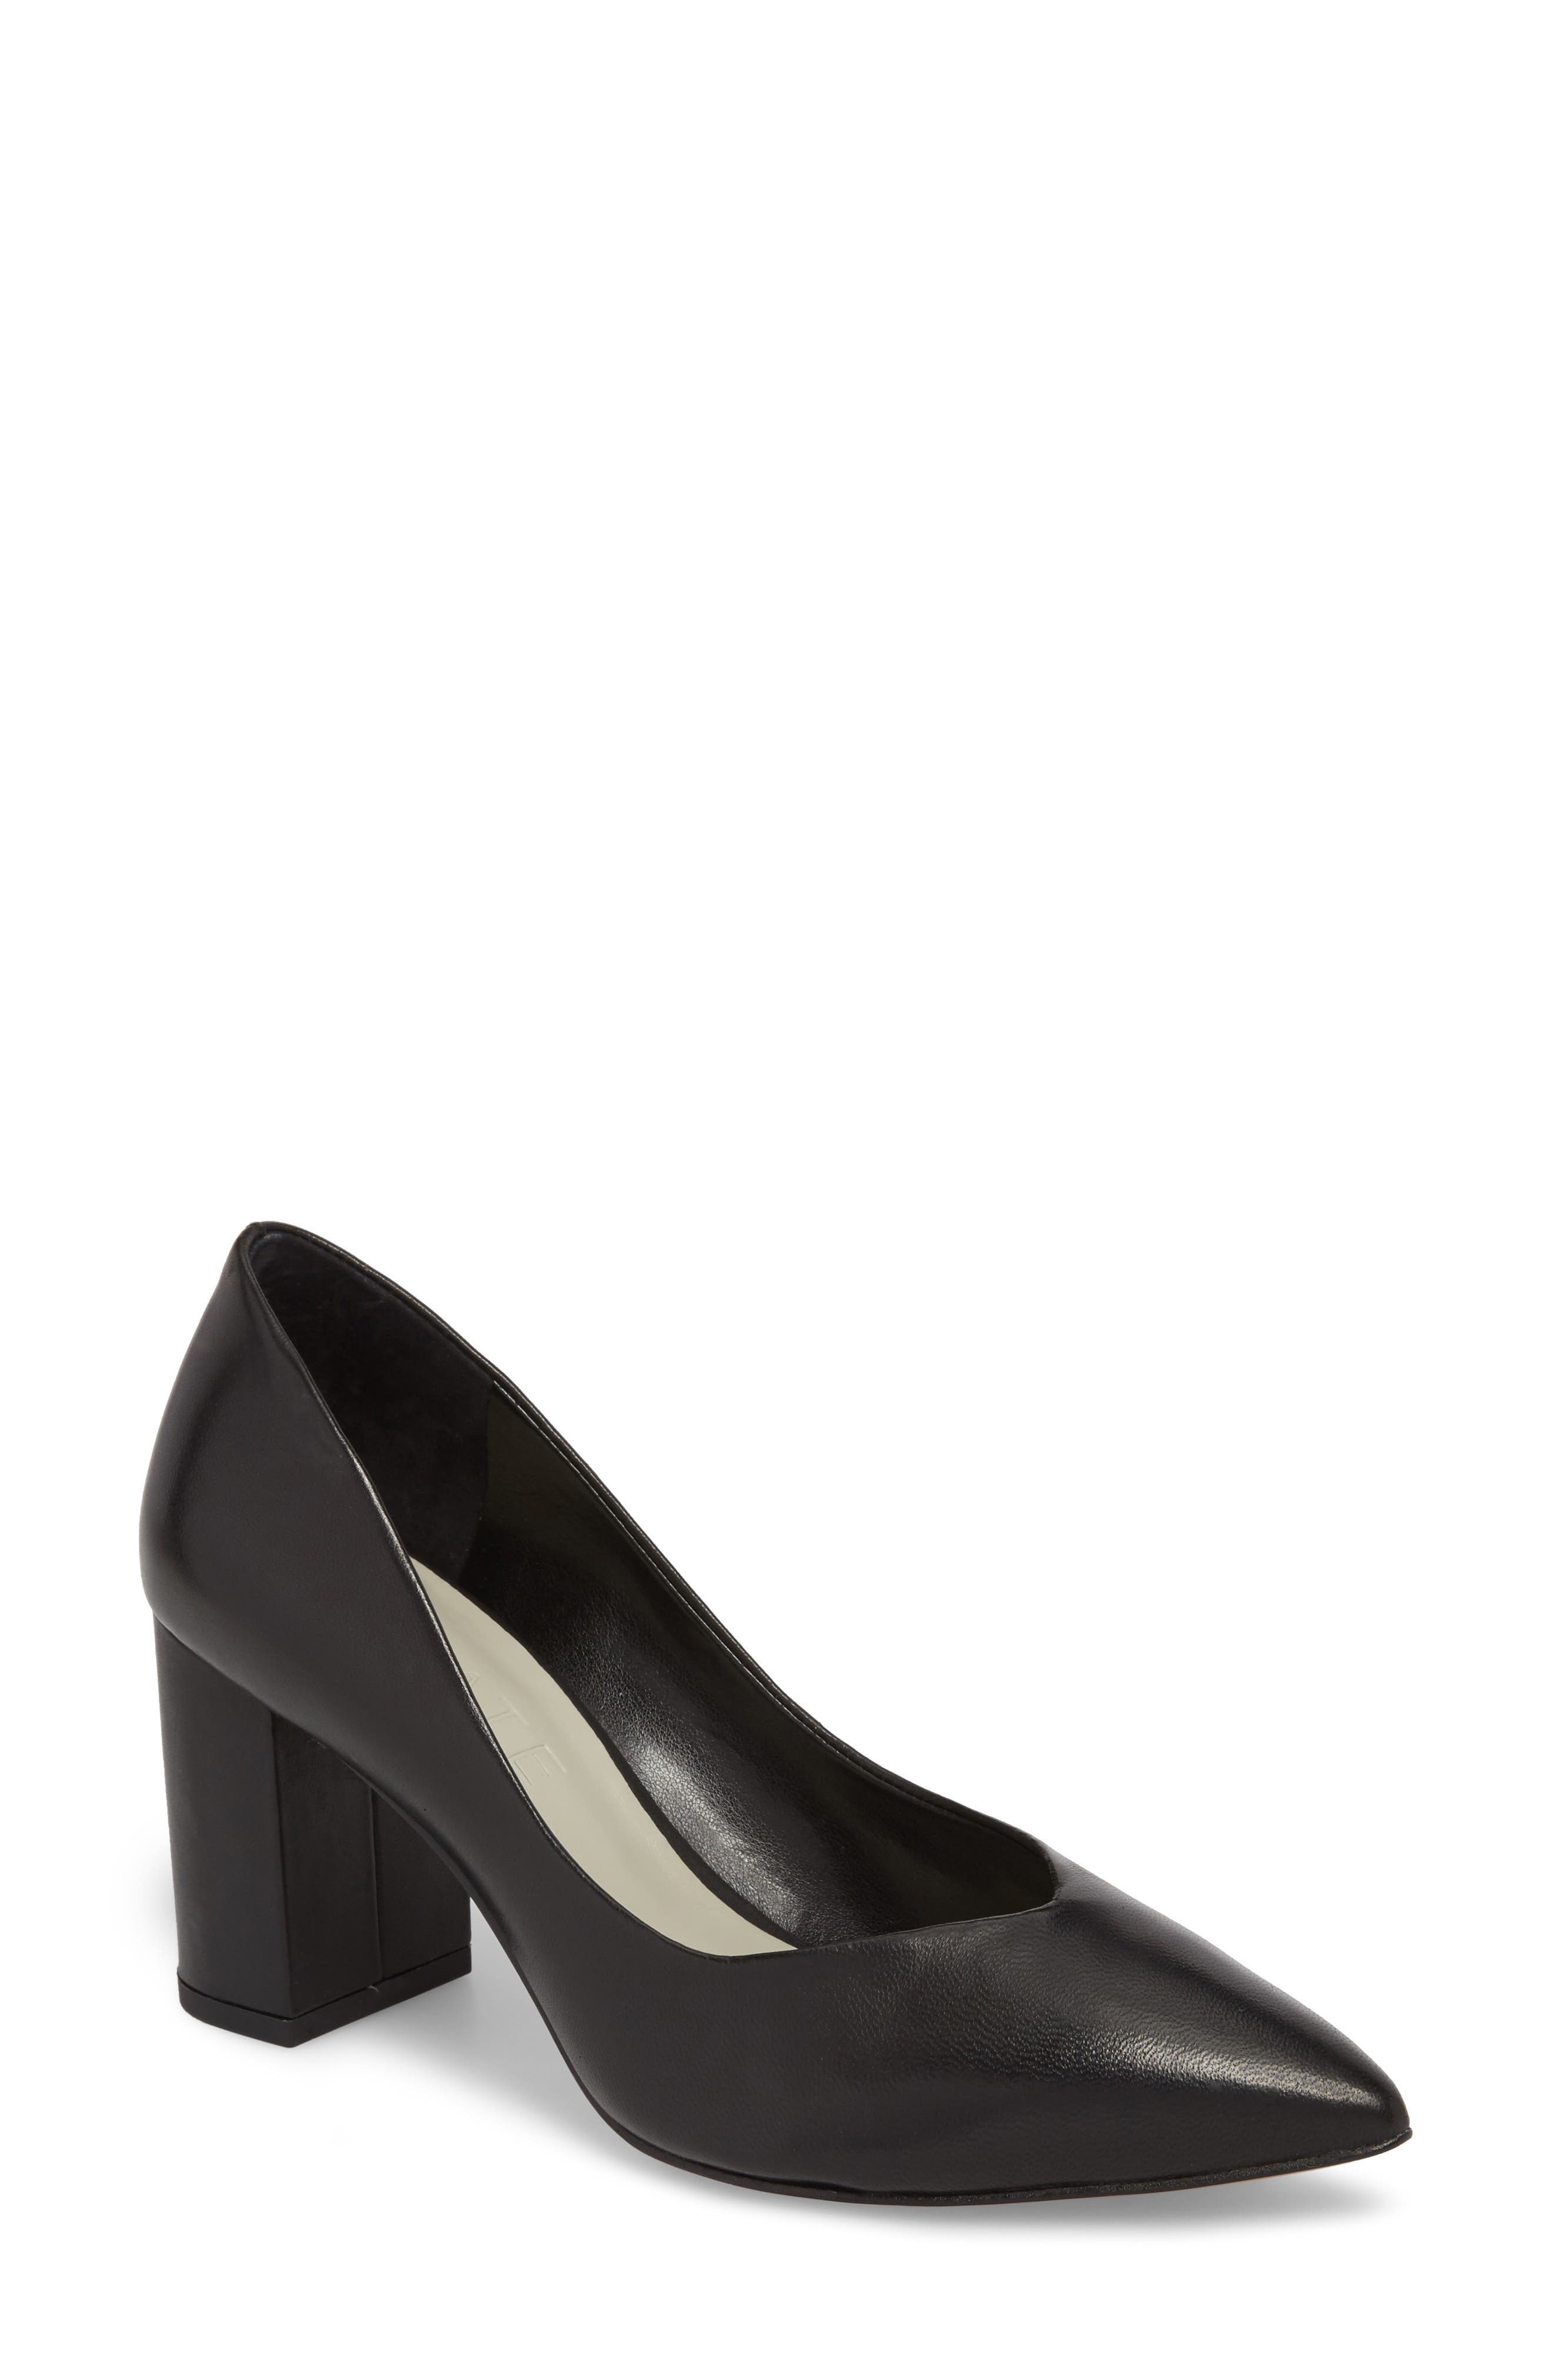 1.STATE, Saffy Block Heel Pump, Main thumbnail 1, color, BLACK LEATHER